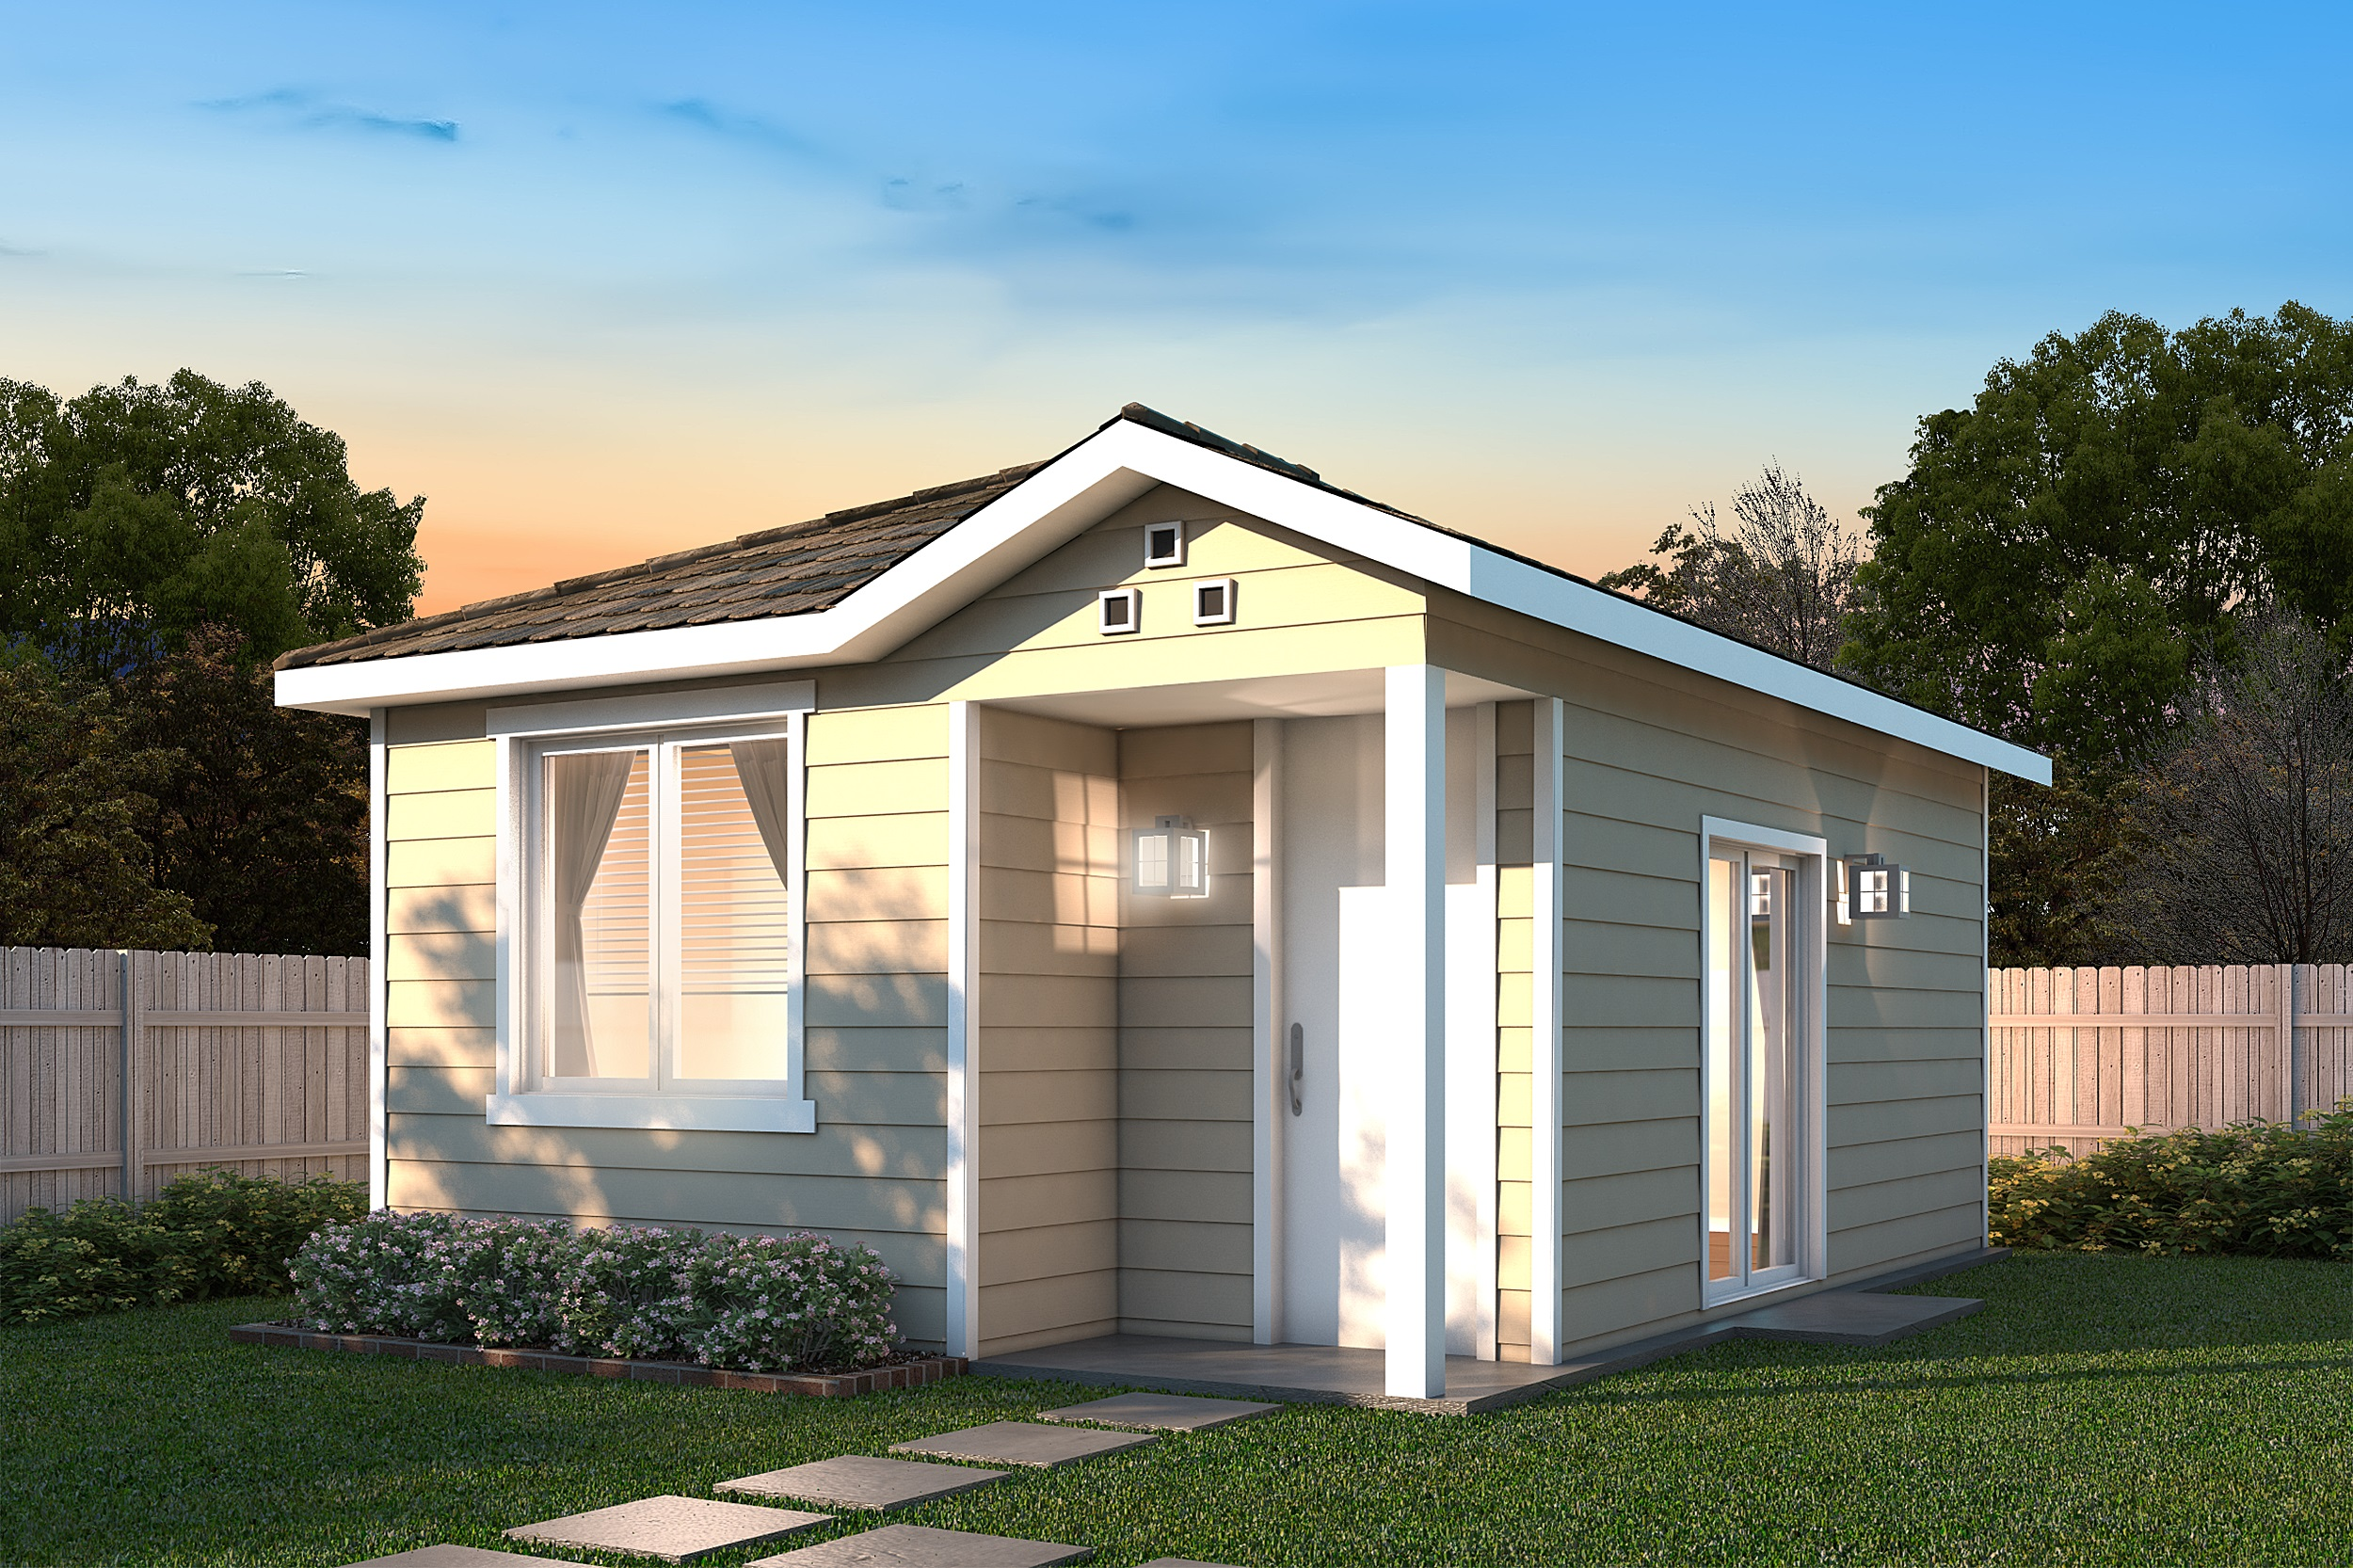 G j gardner homes debuts 10 new granny flat designs for Granny homes